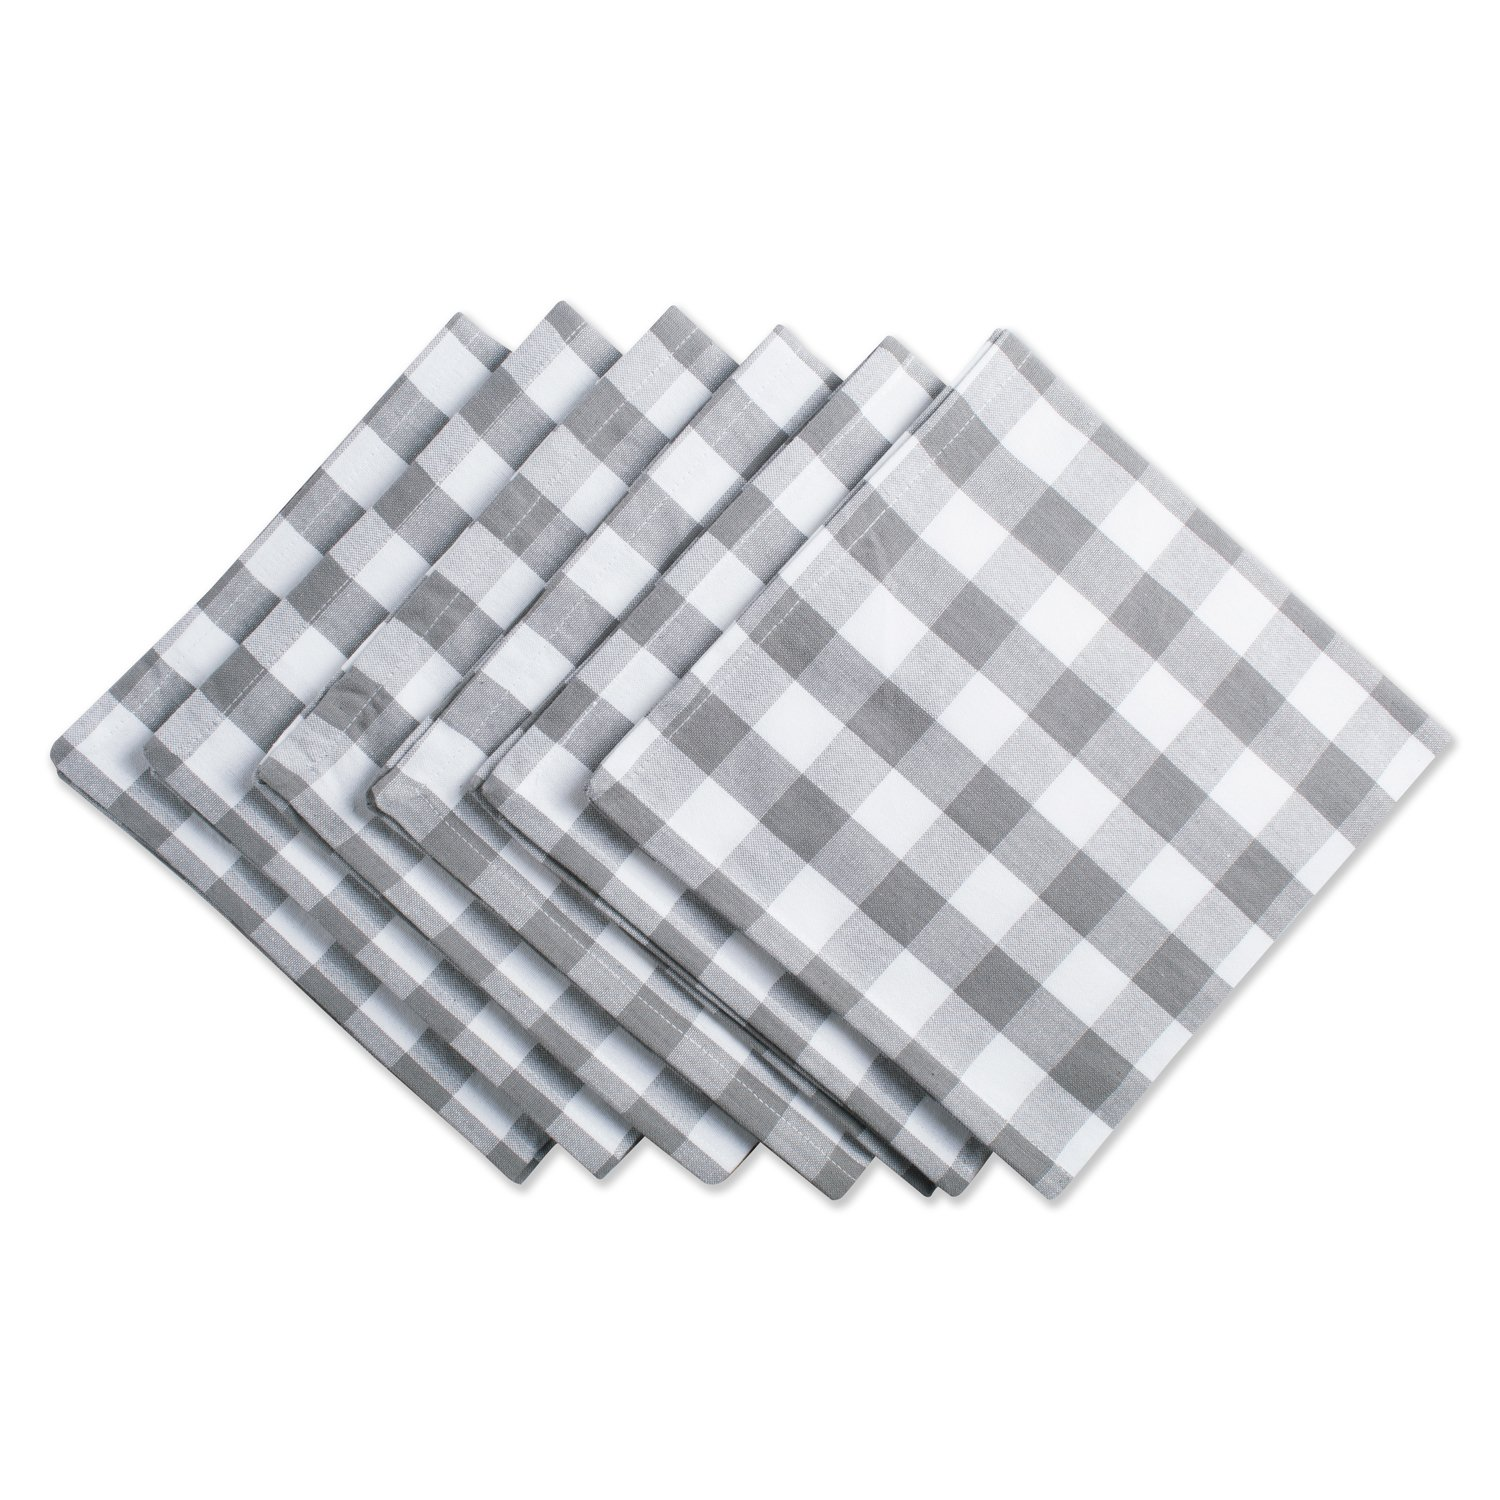 DII Oversized 20x20 Cotton Napkin, Pack of 6, Gray & White Check - Perfect for Fall, Brunch, Weddings, Dinner Parties, or Everyday Use